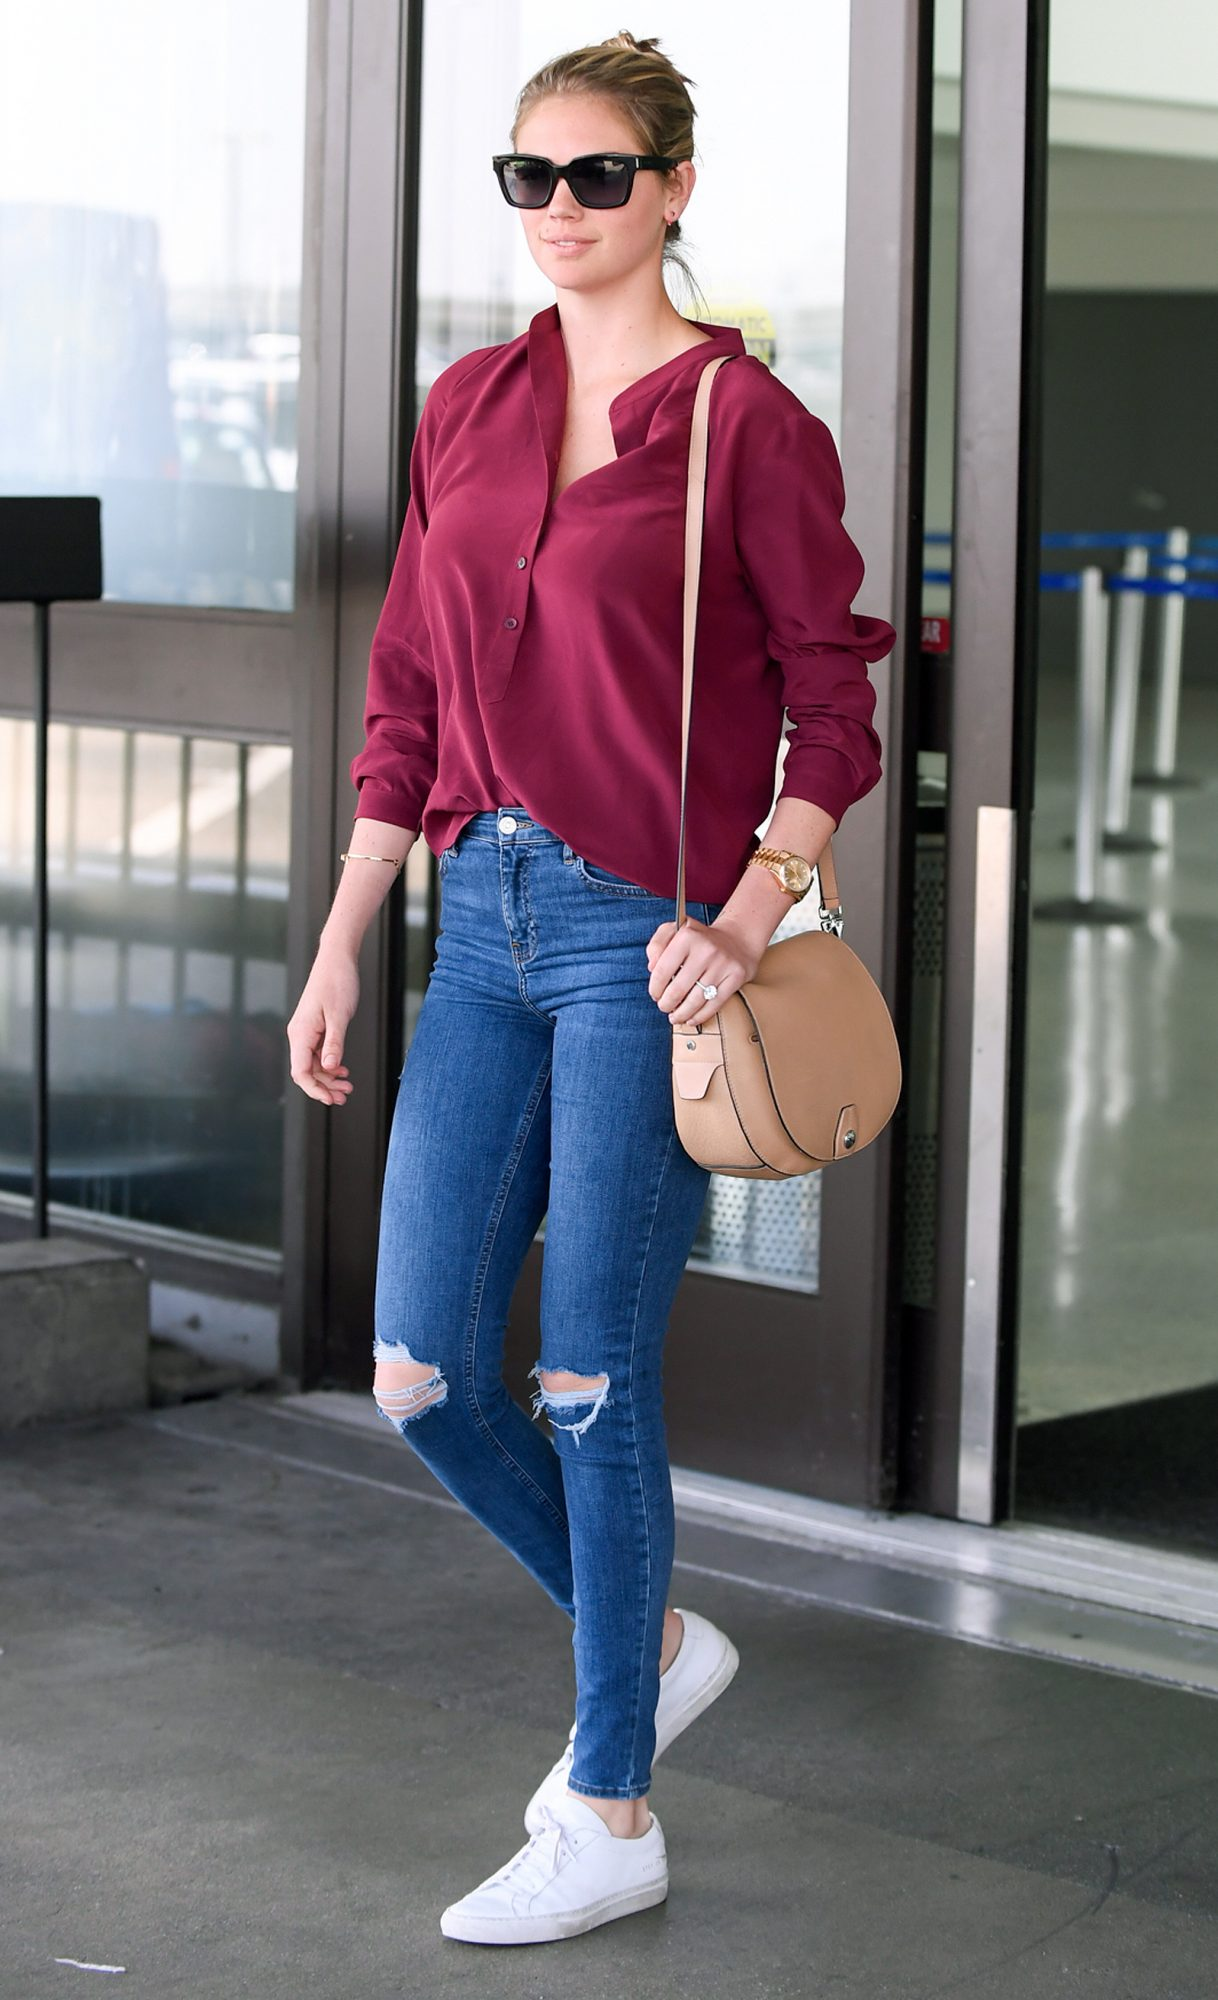 EXCLUSIVE: Kate Upton Spotted Arriving to LAX This Afternoon